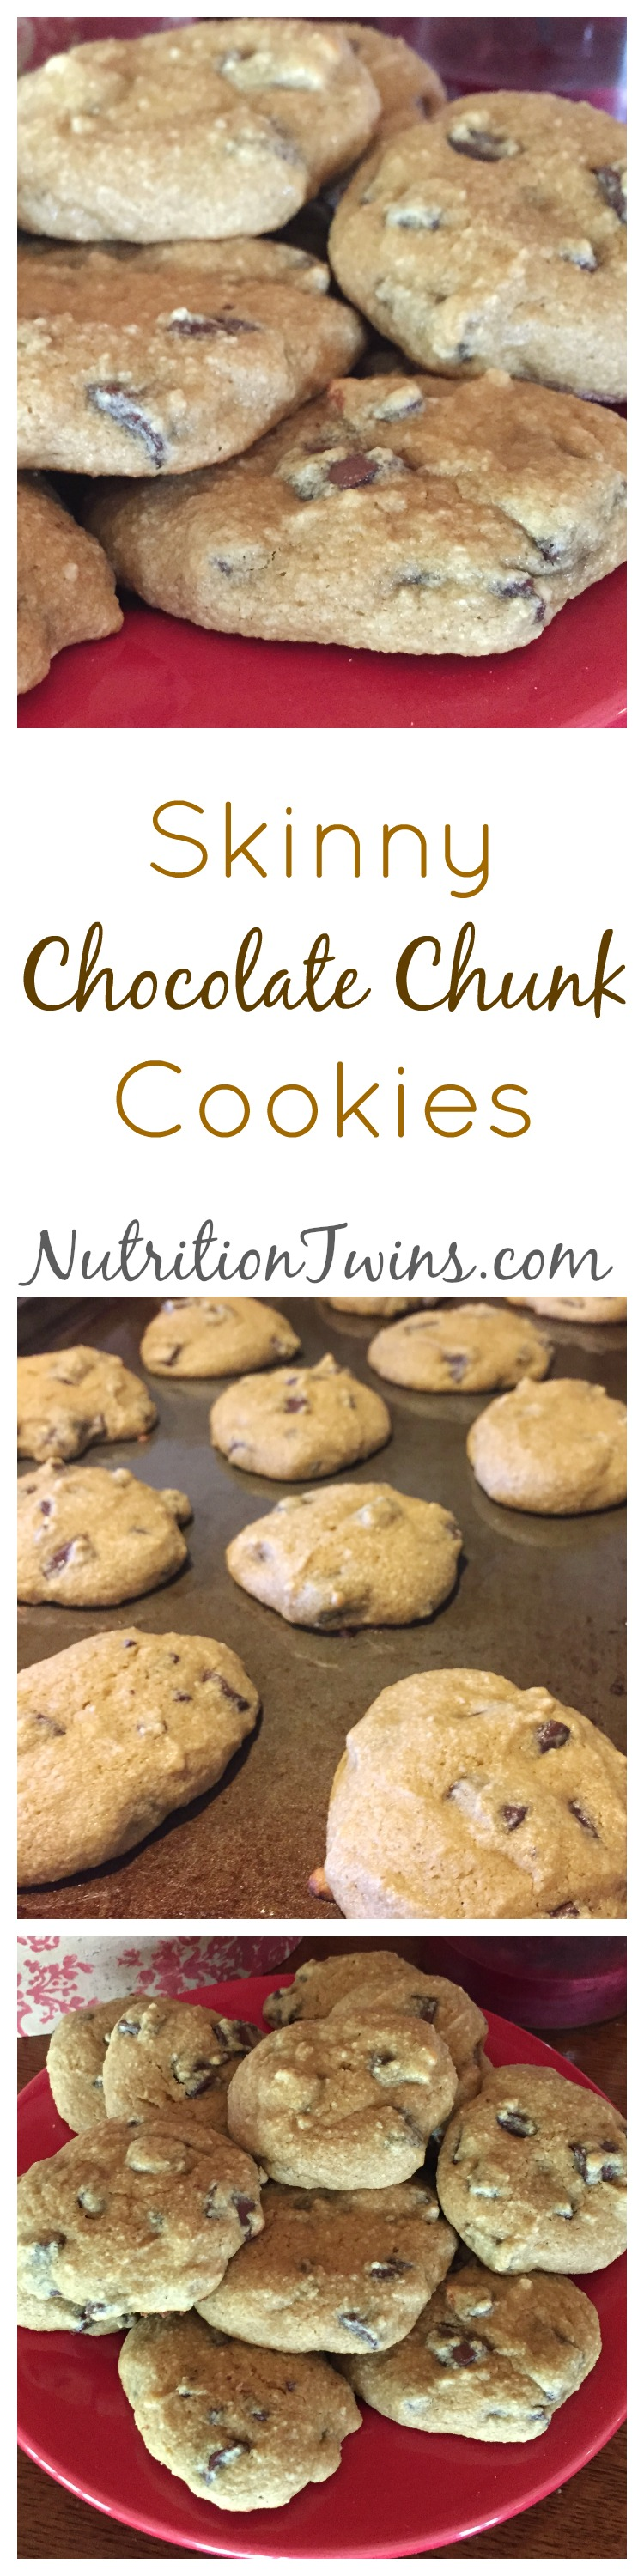 Skinny_ChocolateChunk_Cookies_Collage